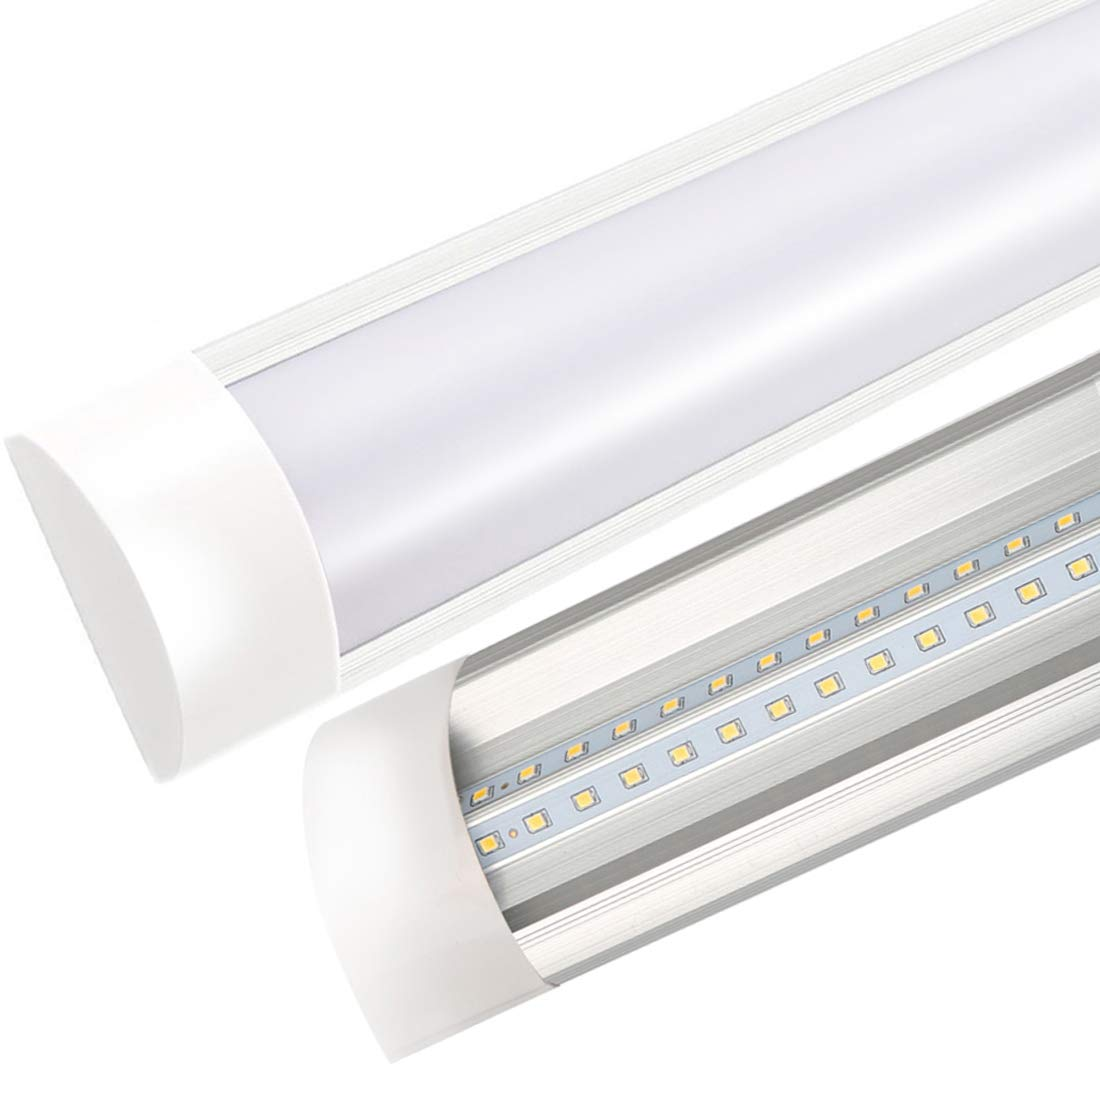 3FT LED Batten Light T10 Integrated Tube Lamp 3000K Wall Lamps with Dust Cover Chandelier Energy Saving Super Bright Strip Lights Lighting Factories Workshop Bathroom Balcony Hallway Living Room Bedroom Dining Room Kitchen Supermarkets 30W 1pc XYD